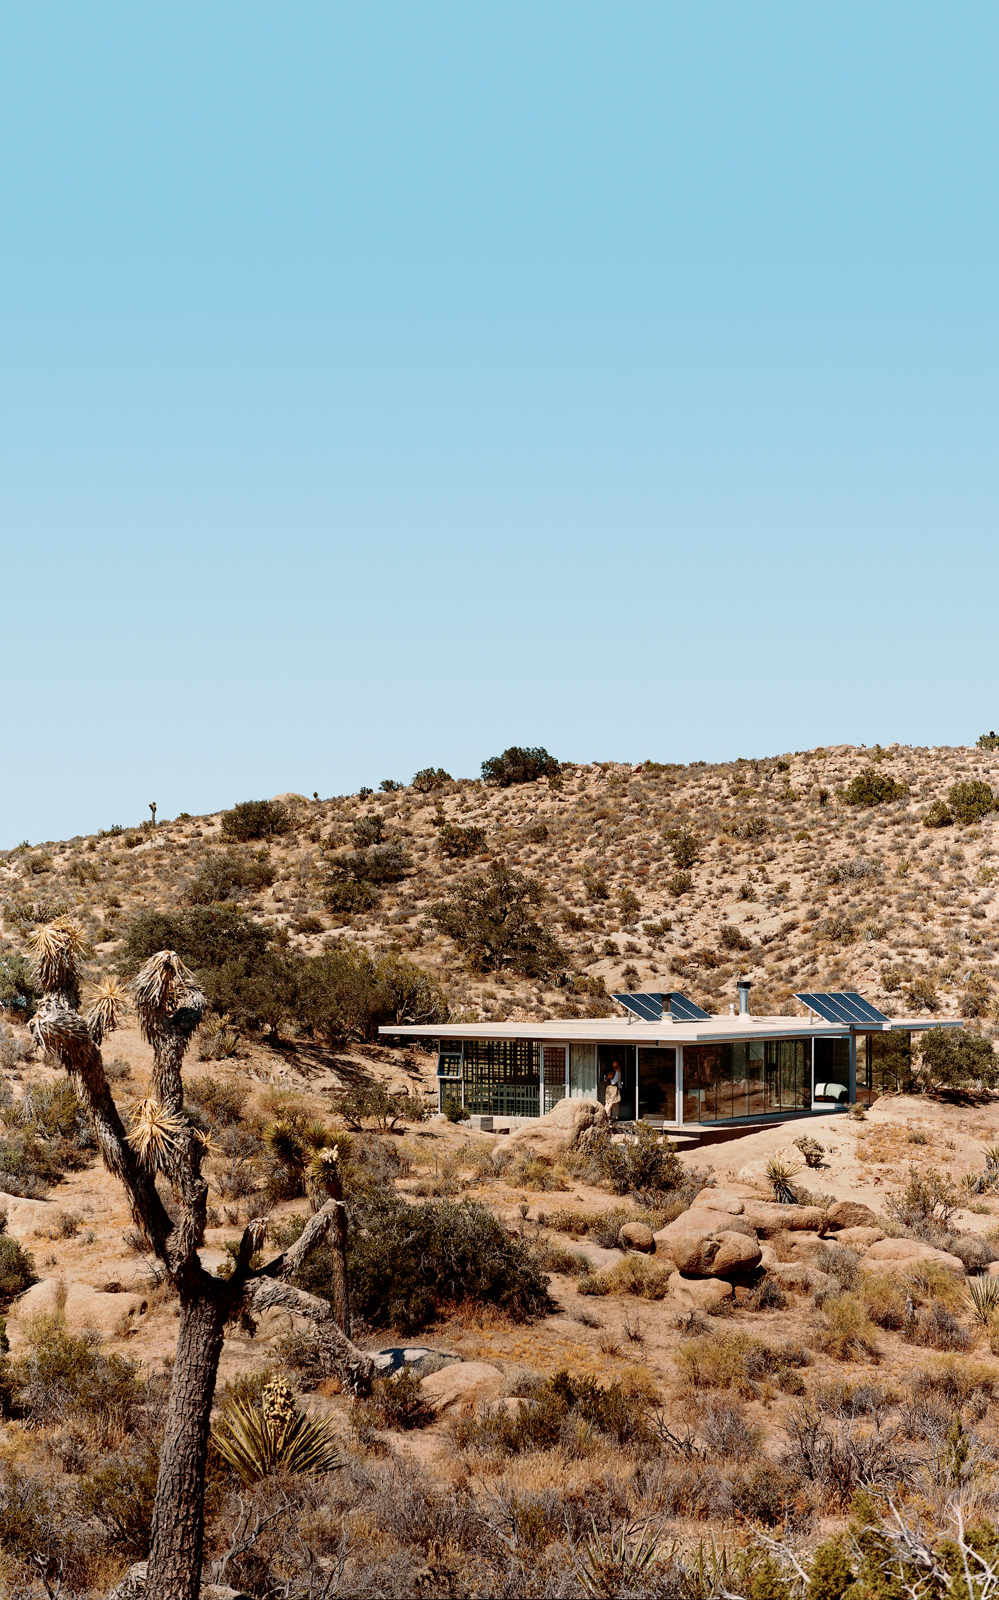 Solar panels catch the sun's energy; wide expanses of open doors and windows provide cross-ventilation; and strategic overhangs shade against the desert's endless heat.